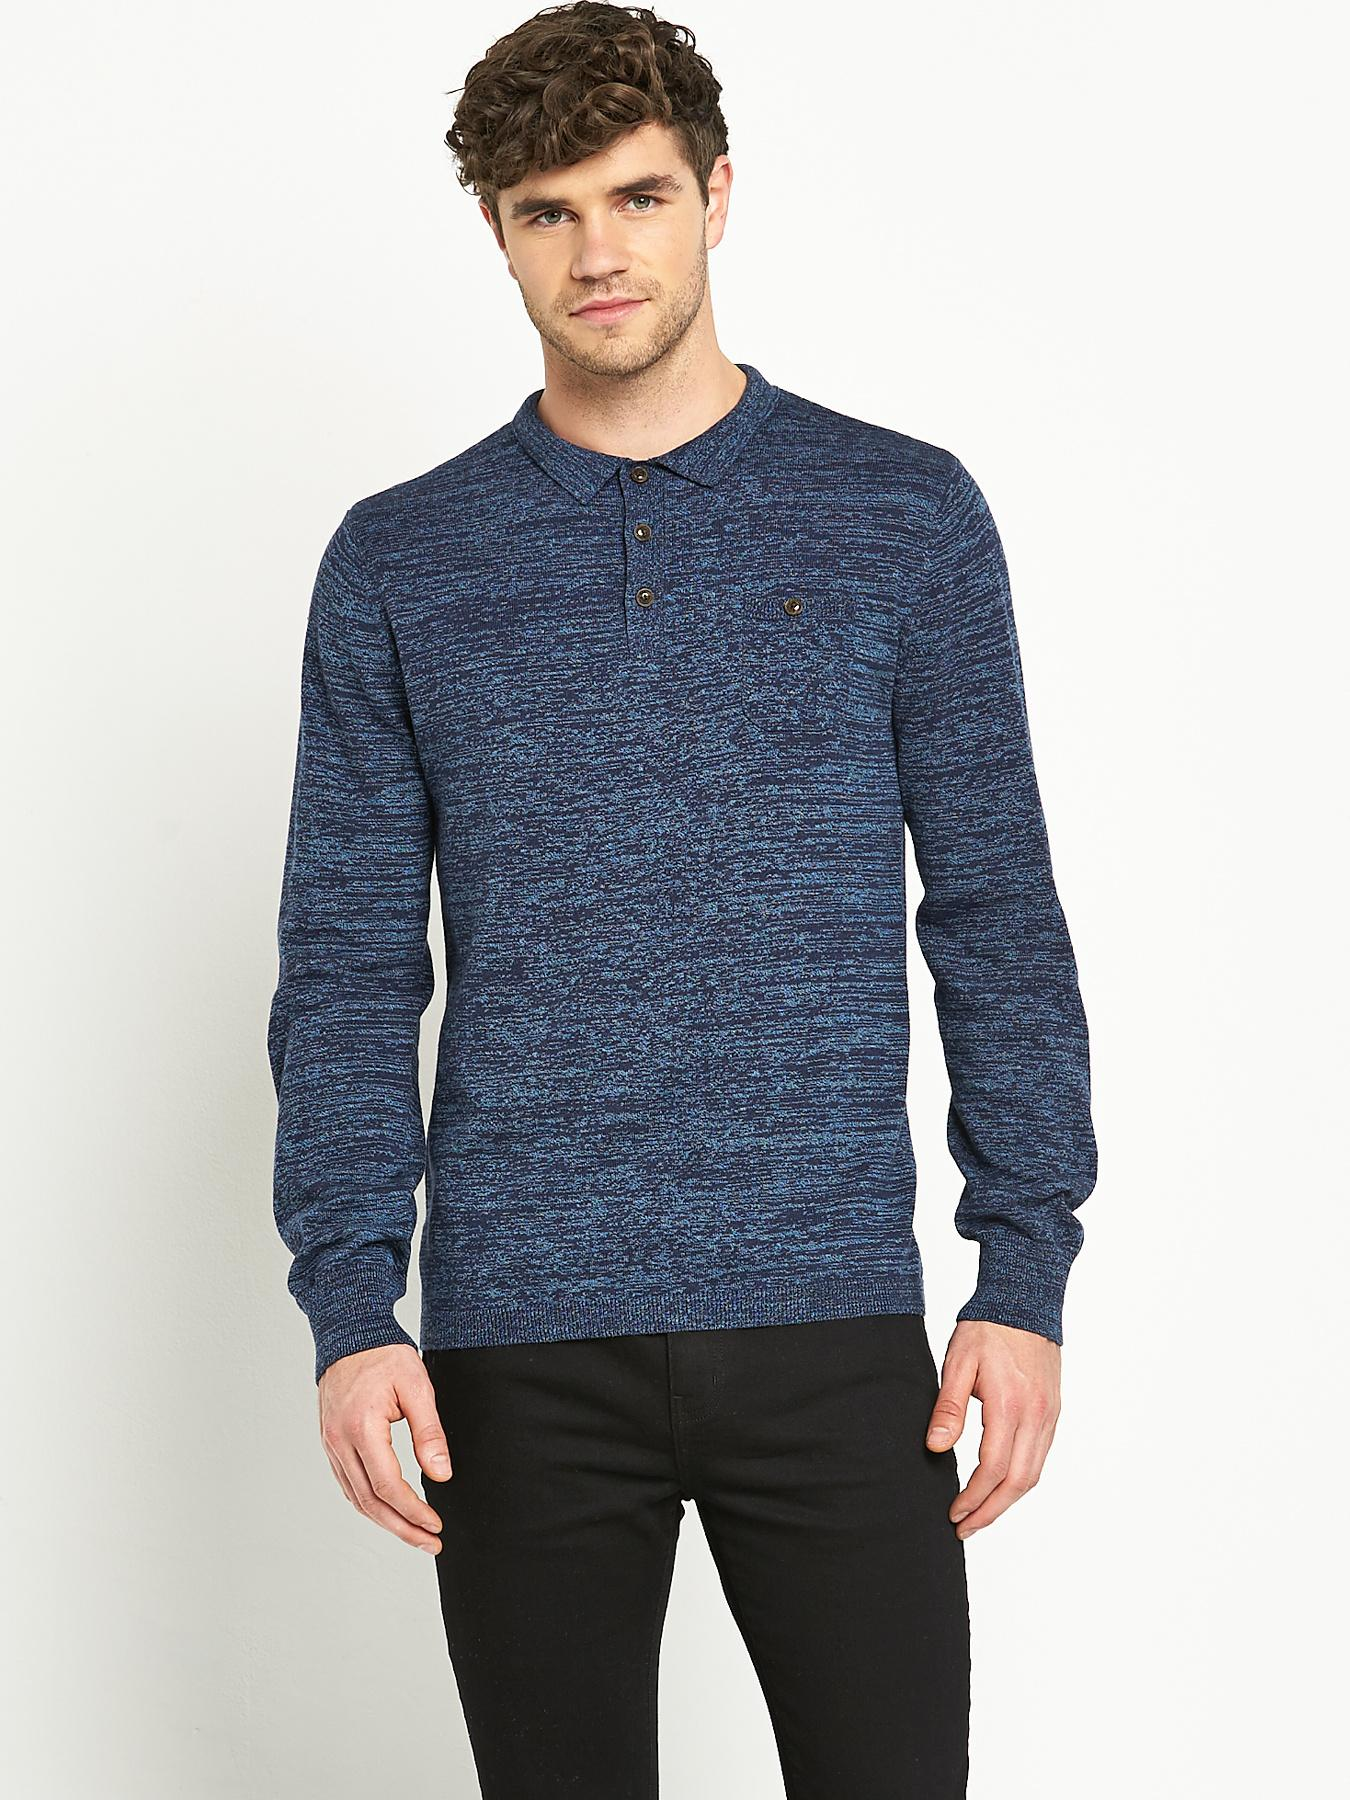 Goodsouls Mens Long Sleeve Knitted Polo Shirt - Navy, Navy